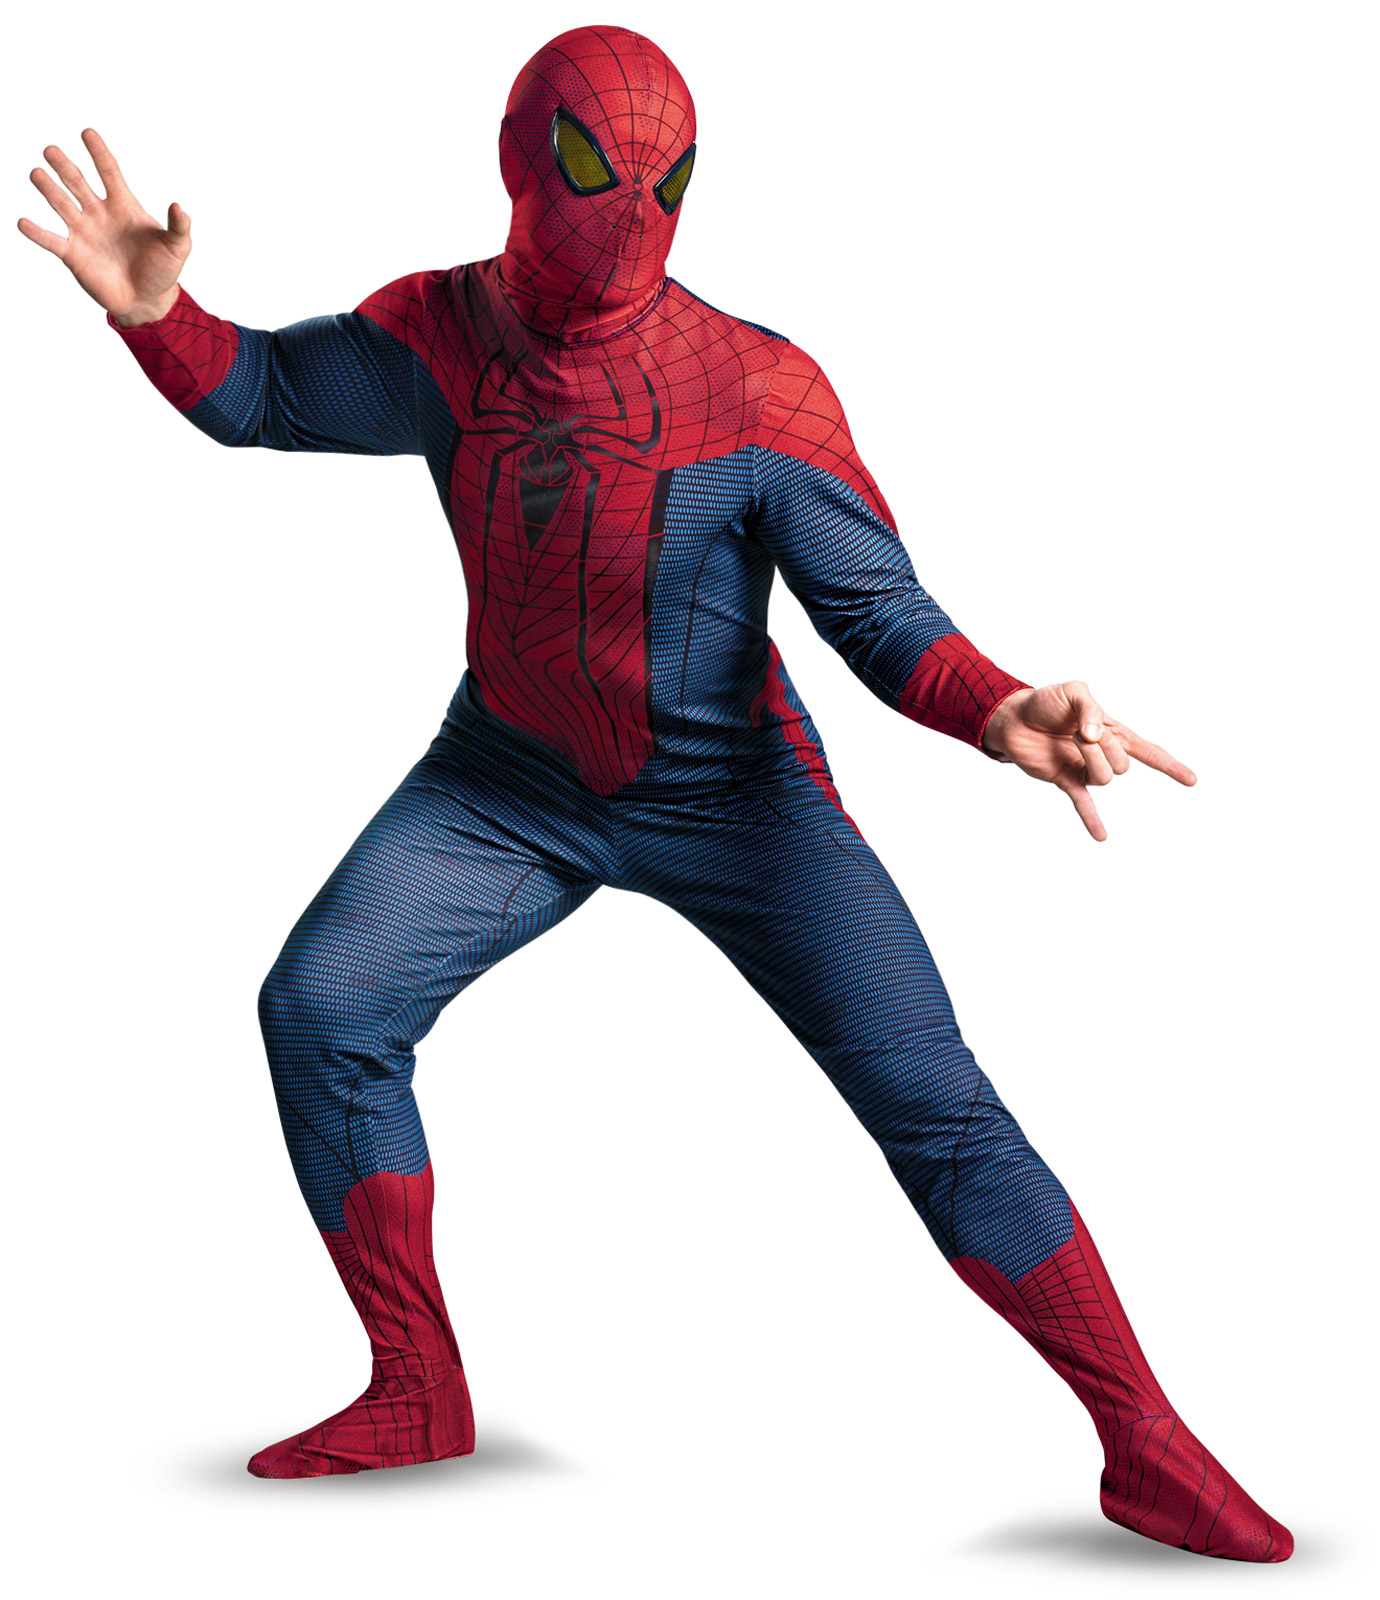 Men's The Amazing Spider-Man Movie Deluxe Plus Adult Costume - Red/Blue - XX-Large (50-52) BS-212407